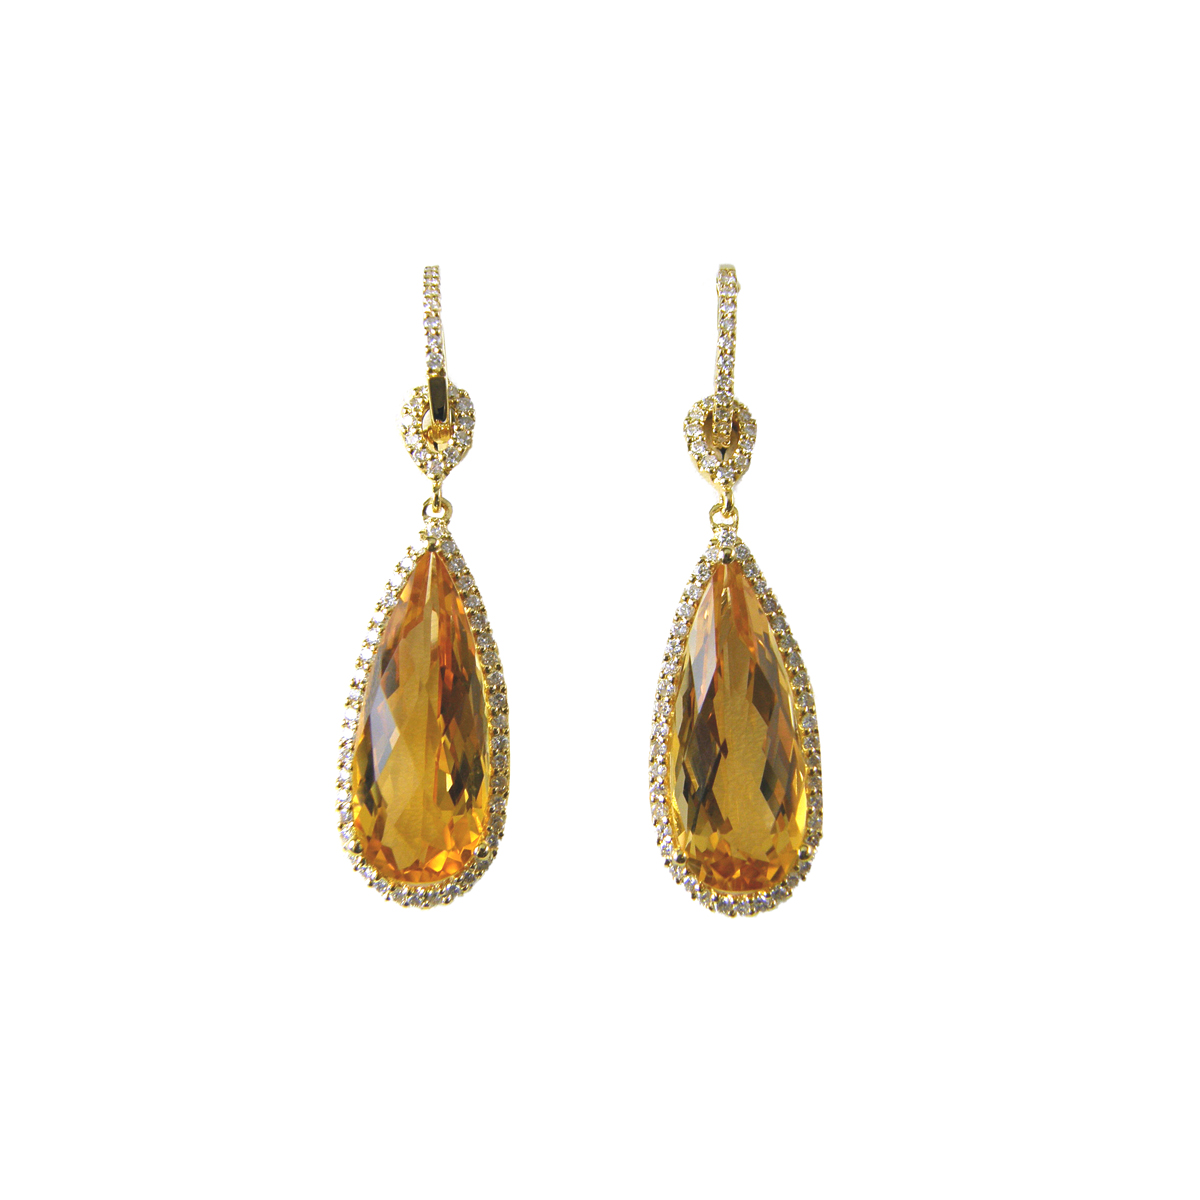 Vintage 18 Karat Yellow Gold Pear Shaped Citrine and Diamond Earrings